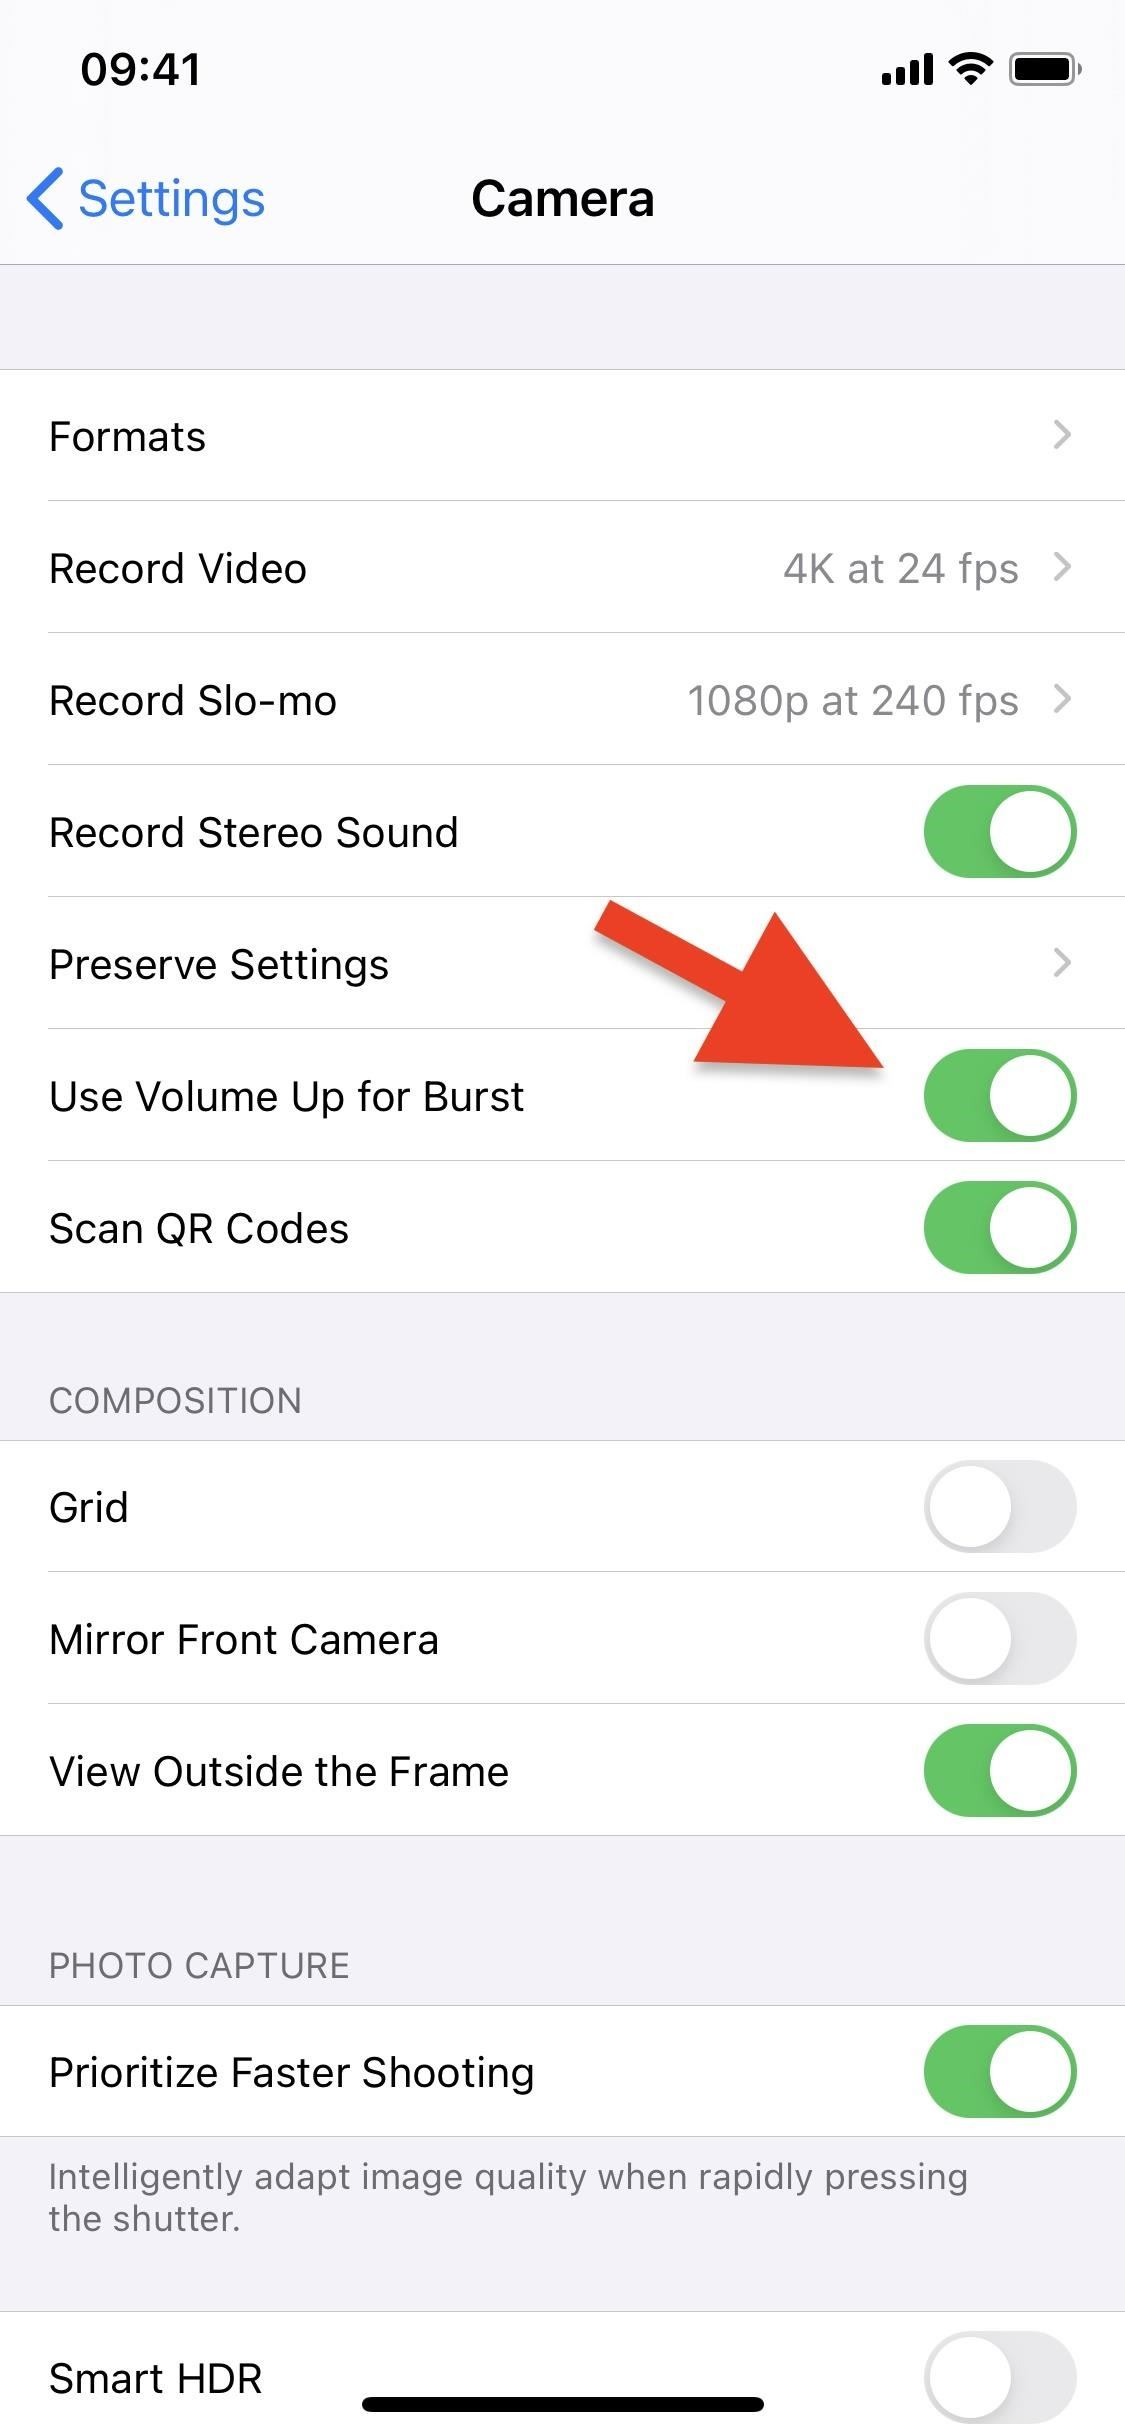 12 new camera features in iOS 14 that make your photos and videos even better